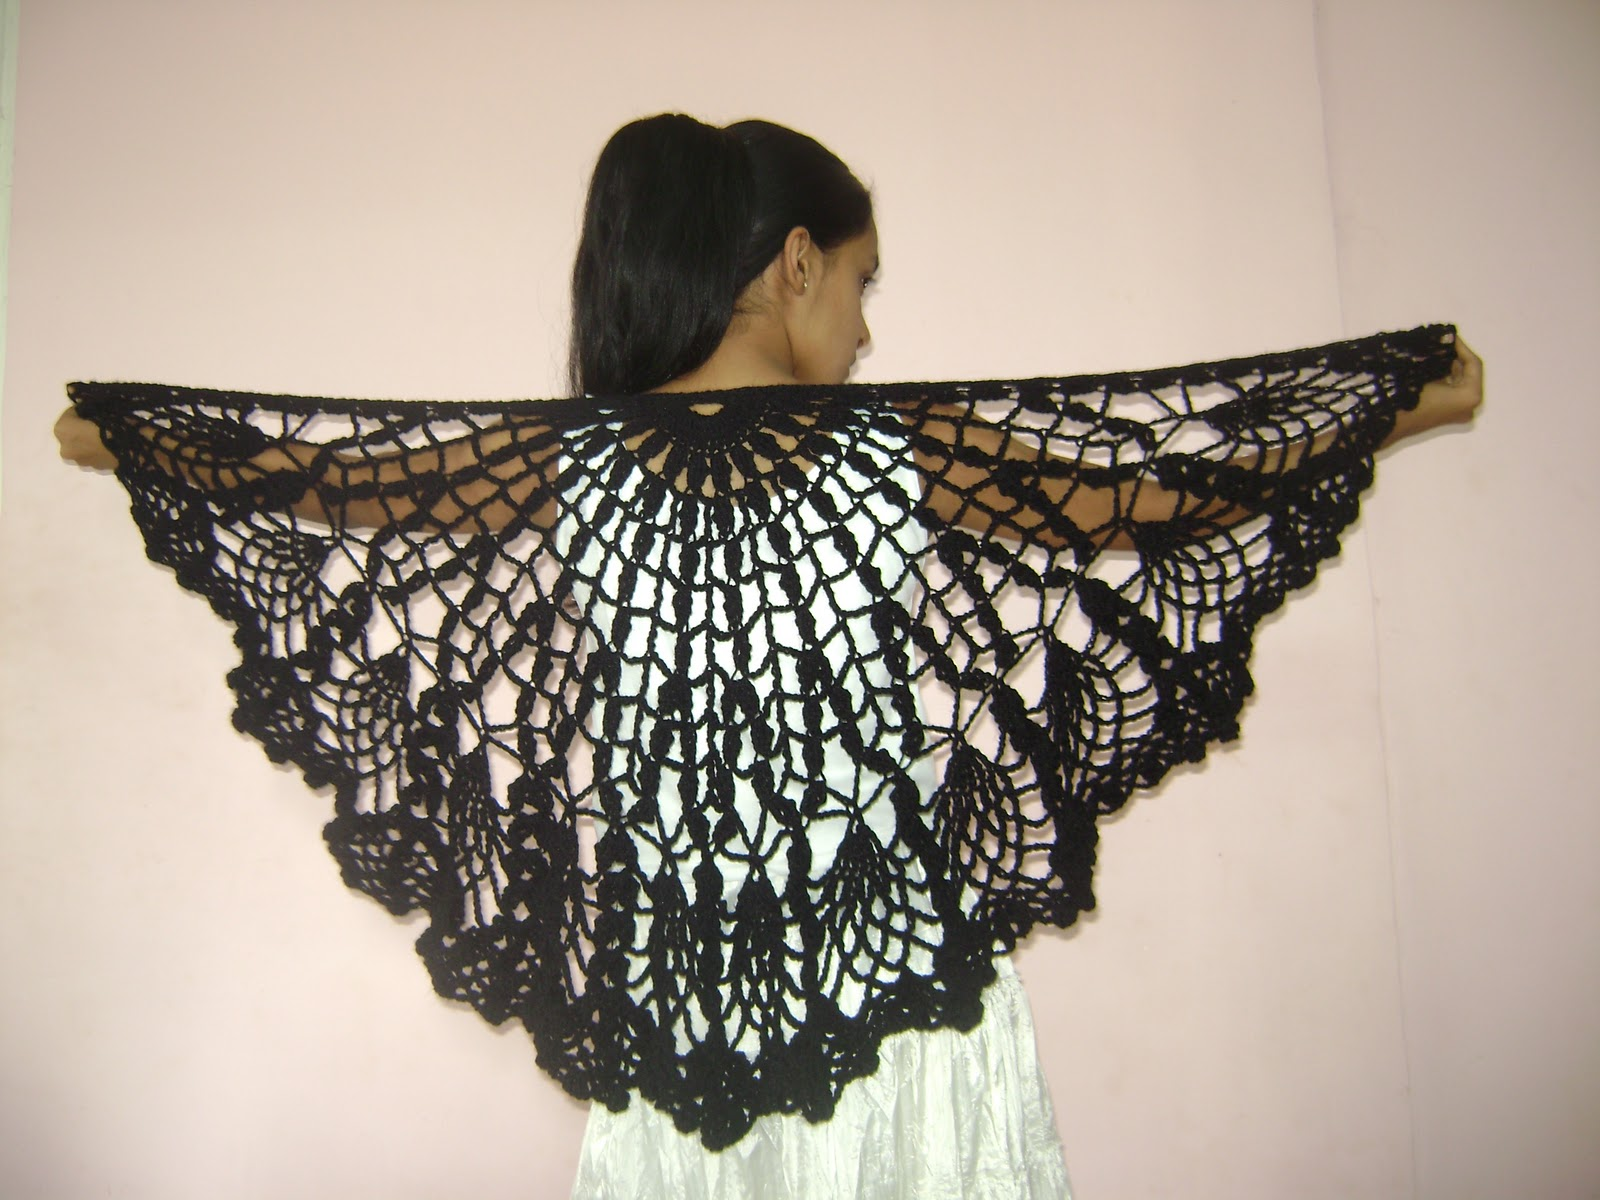 Crochet Patterns Shawl : Crochet - All About Crocheting - Free Patterns and Instructions